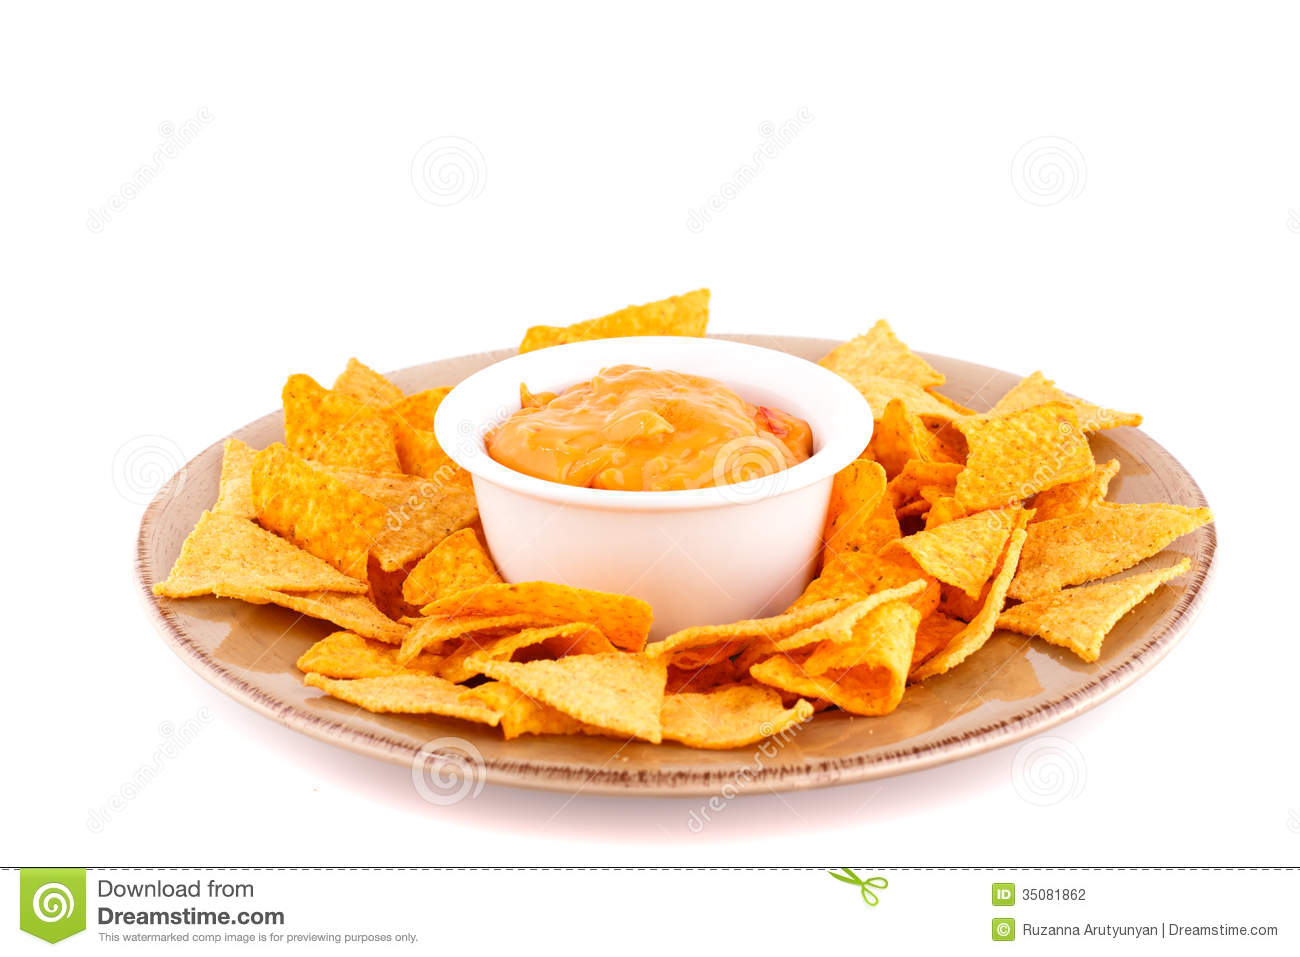 Nachos And Cheese Nachos and cheese sauce on